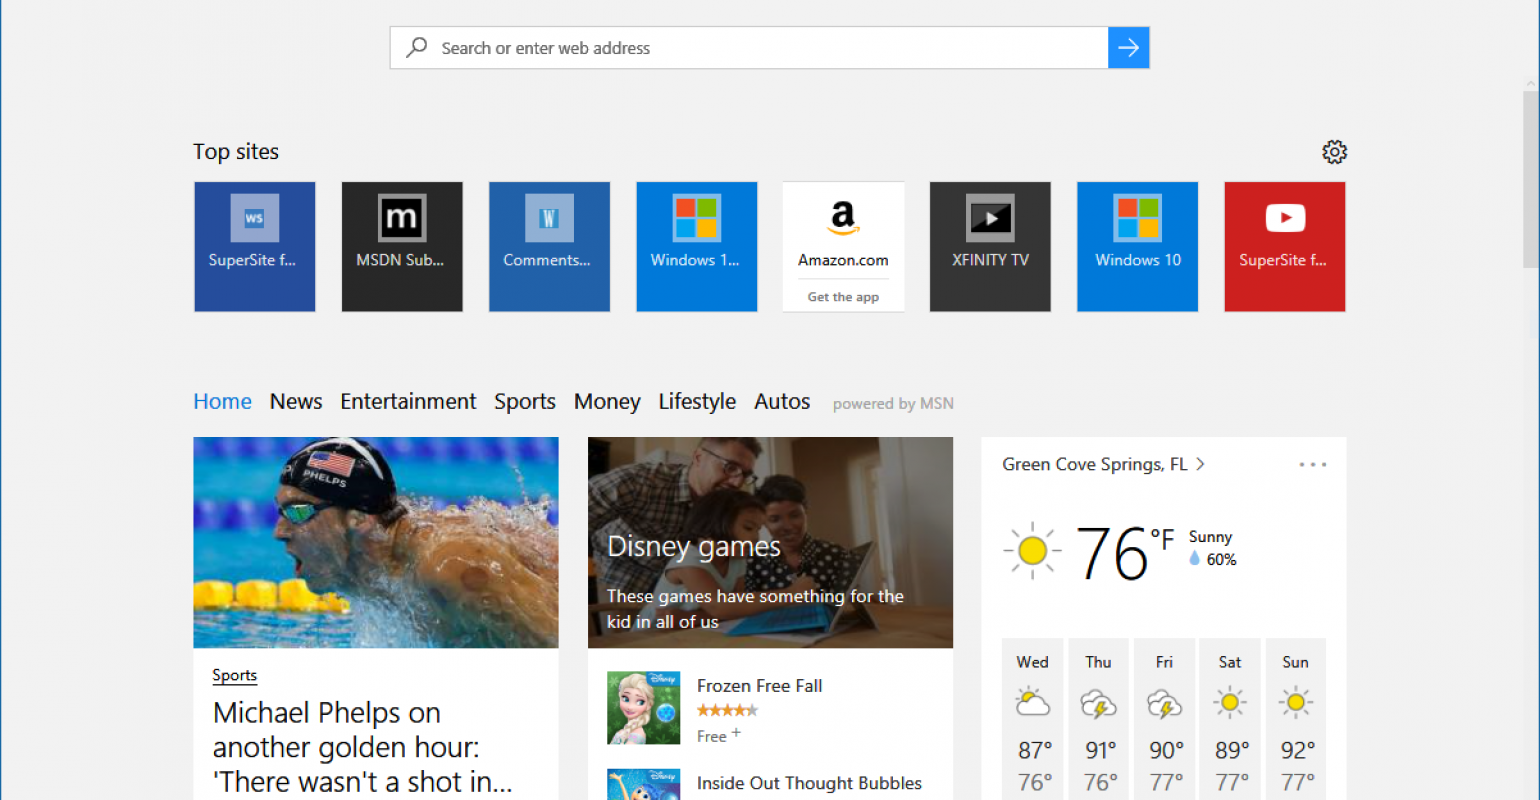 Web | Microsoft Edge has two new context menu shortcuts to